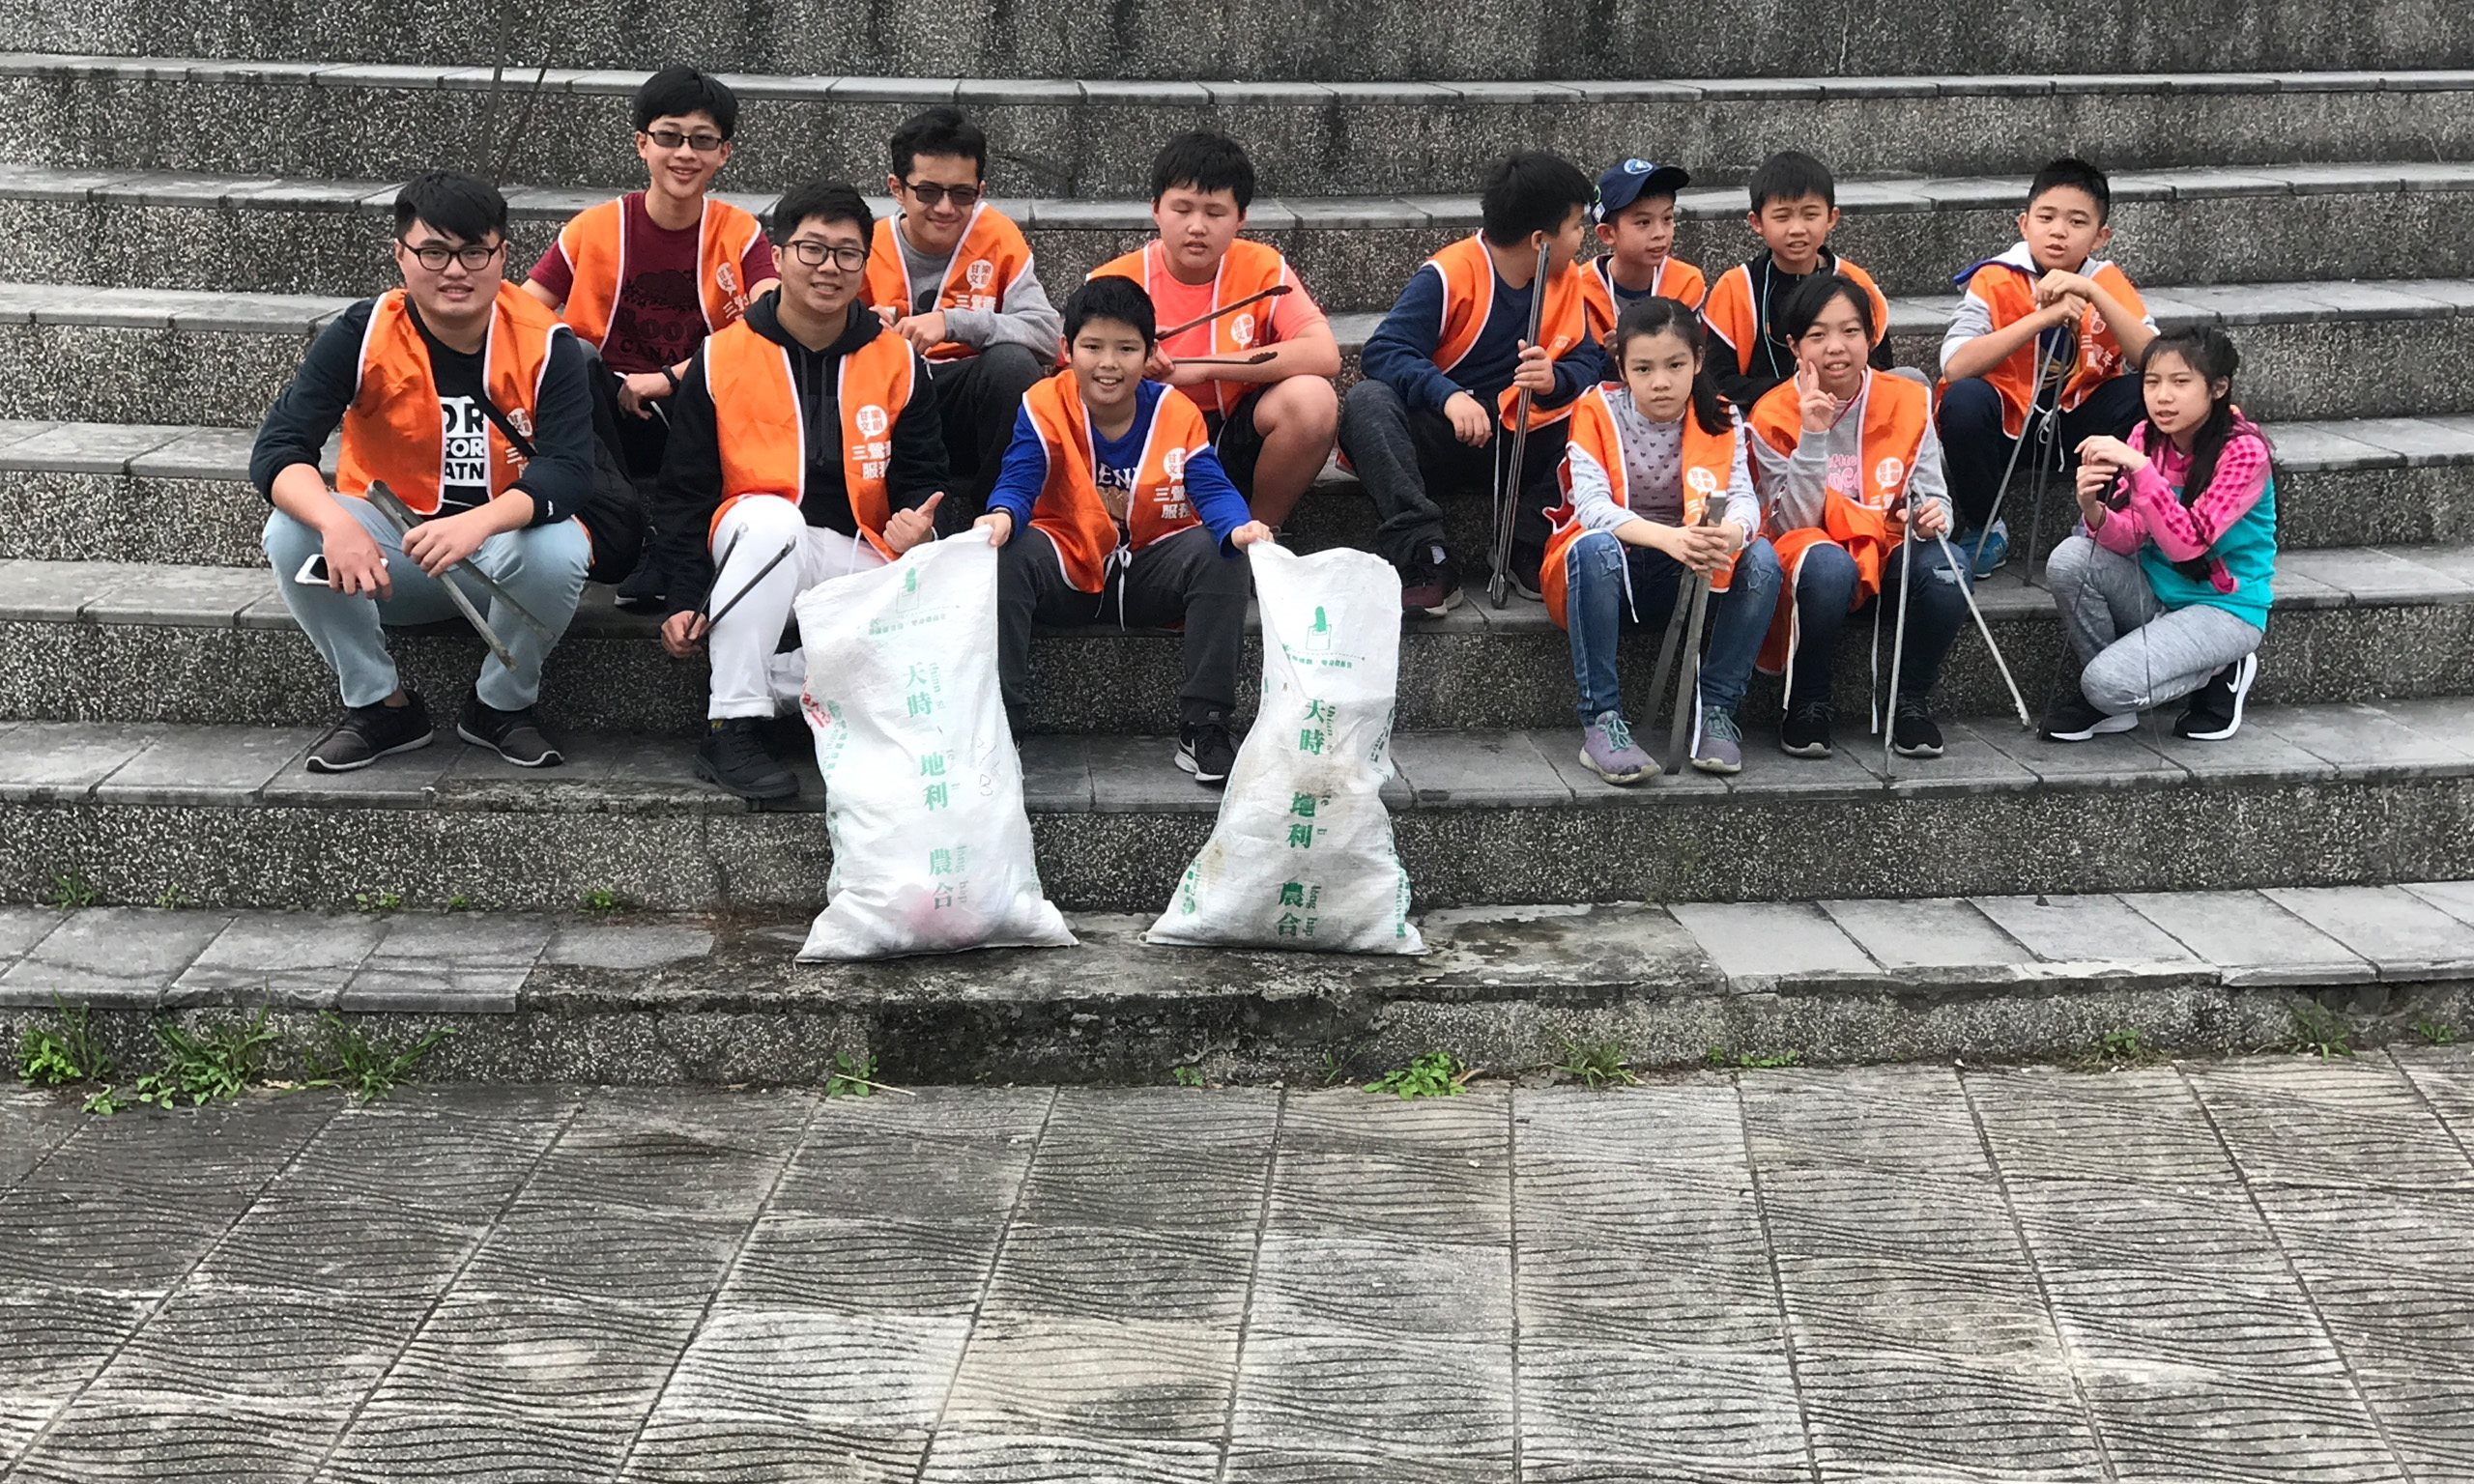 2019/01/19 River Clean-up Operation